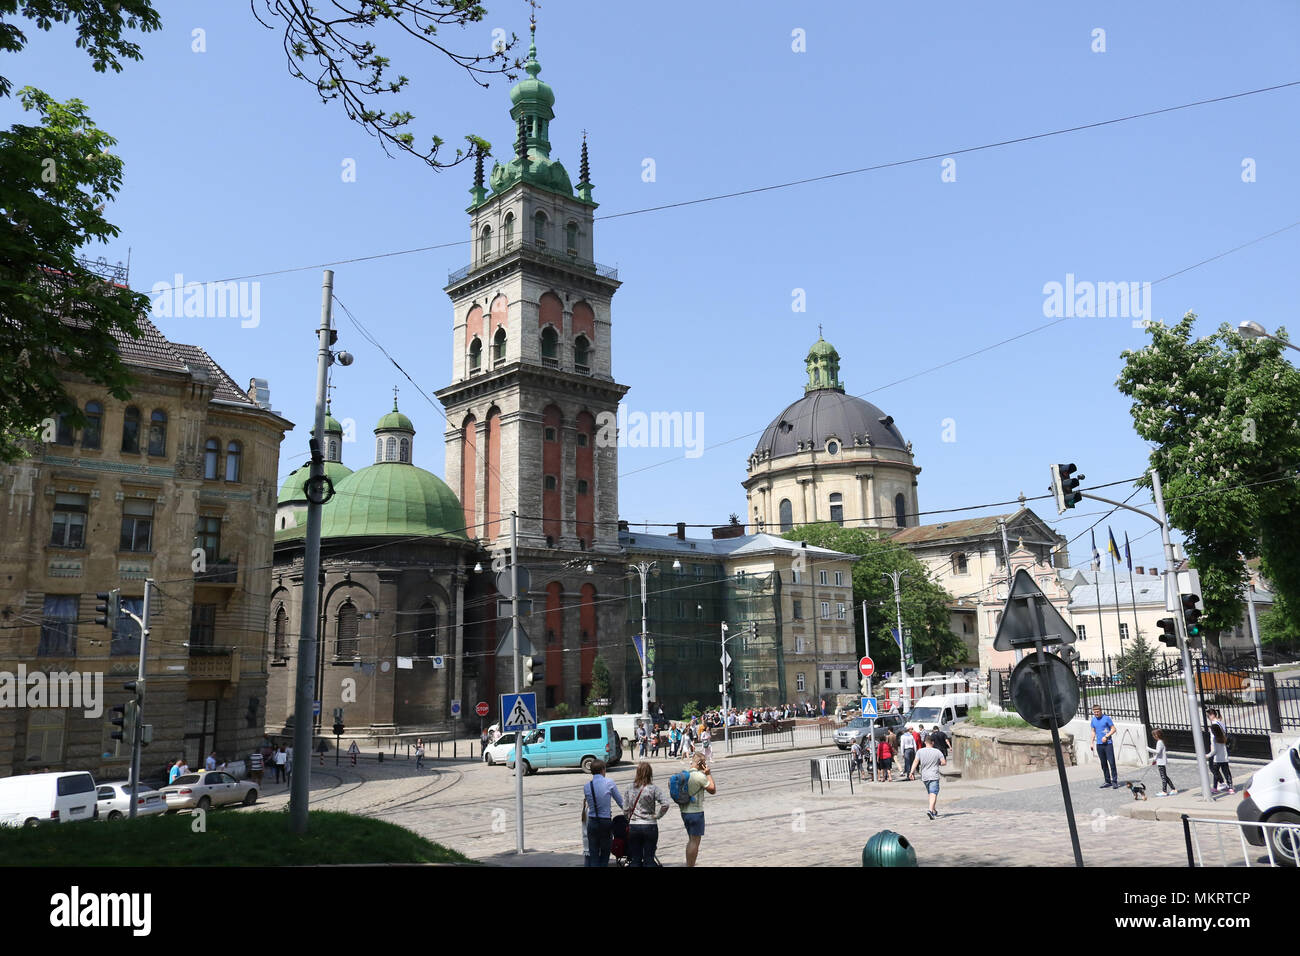 News of Lviv region: a selection of sites